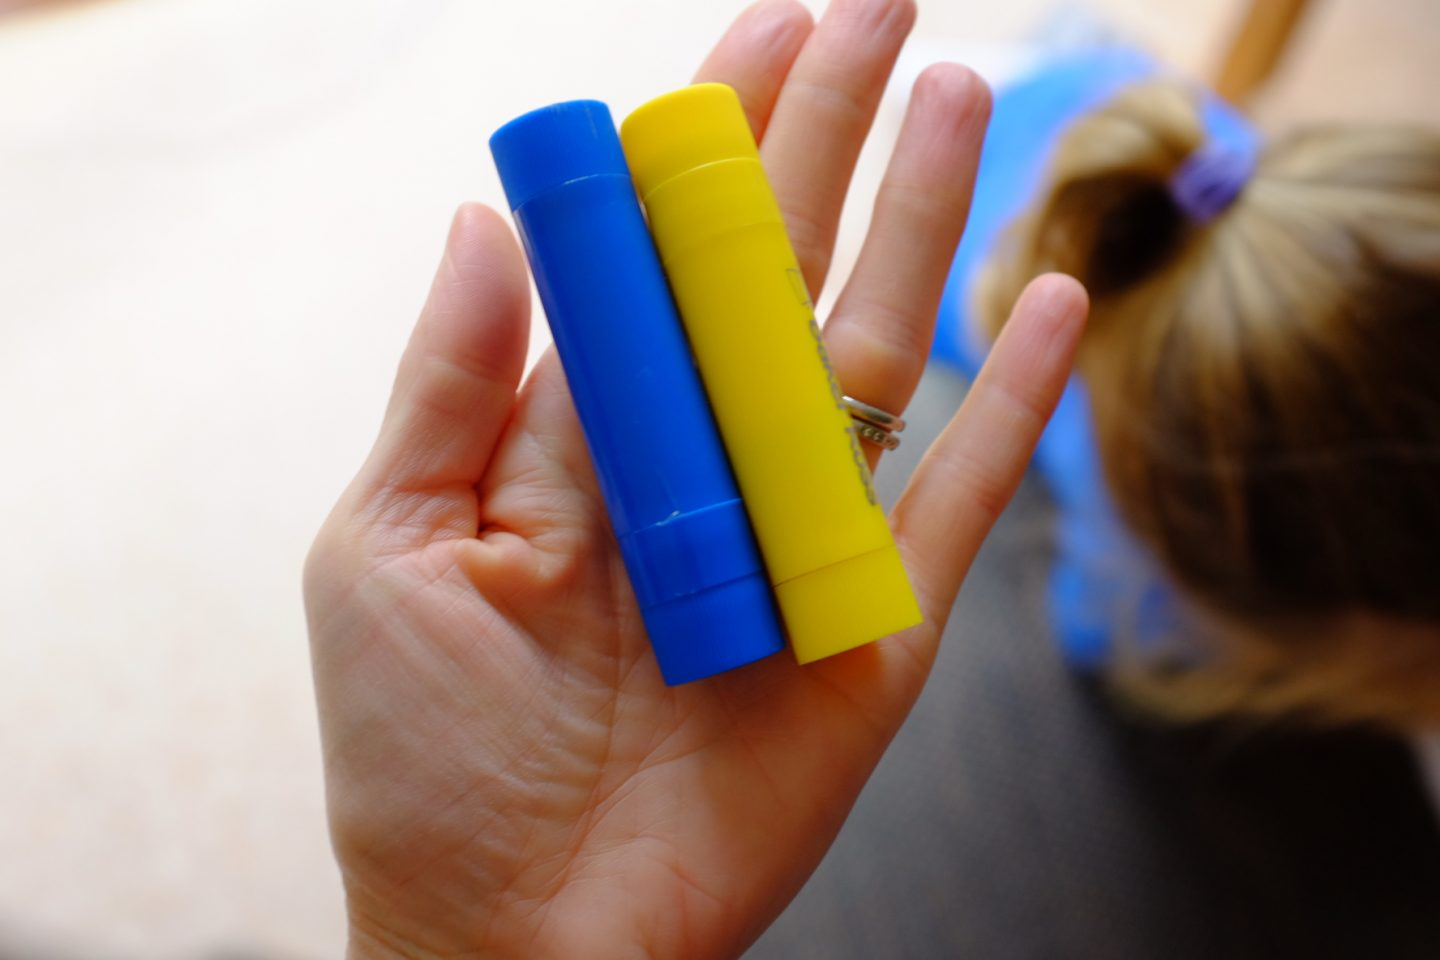 paint sticks blue and yellow